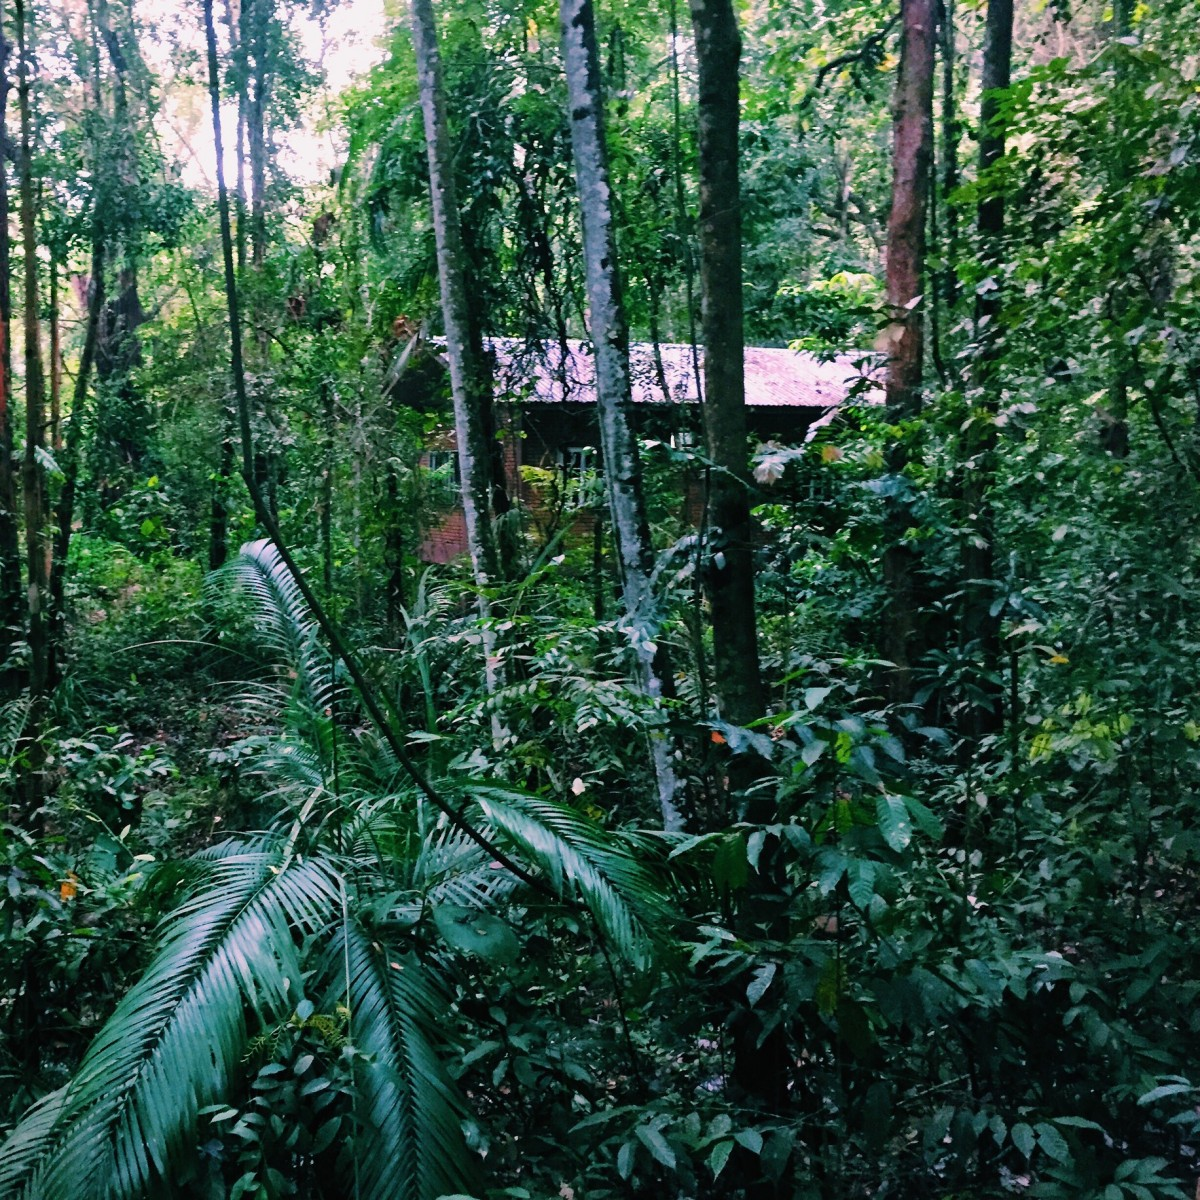 Permai Rainforest REsort, Borneo, Malaysia - Copyright: www.globalmousetravels.com